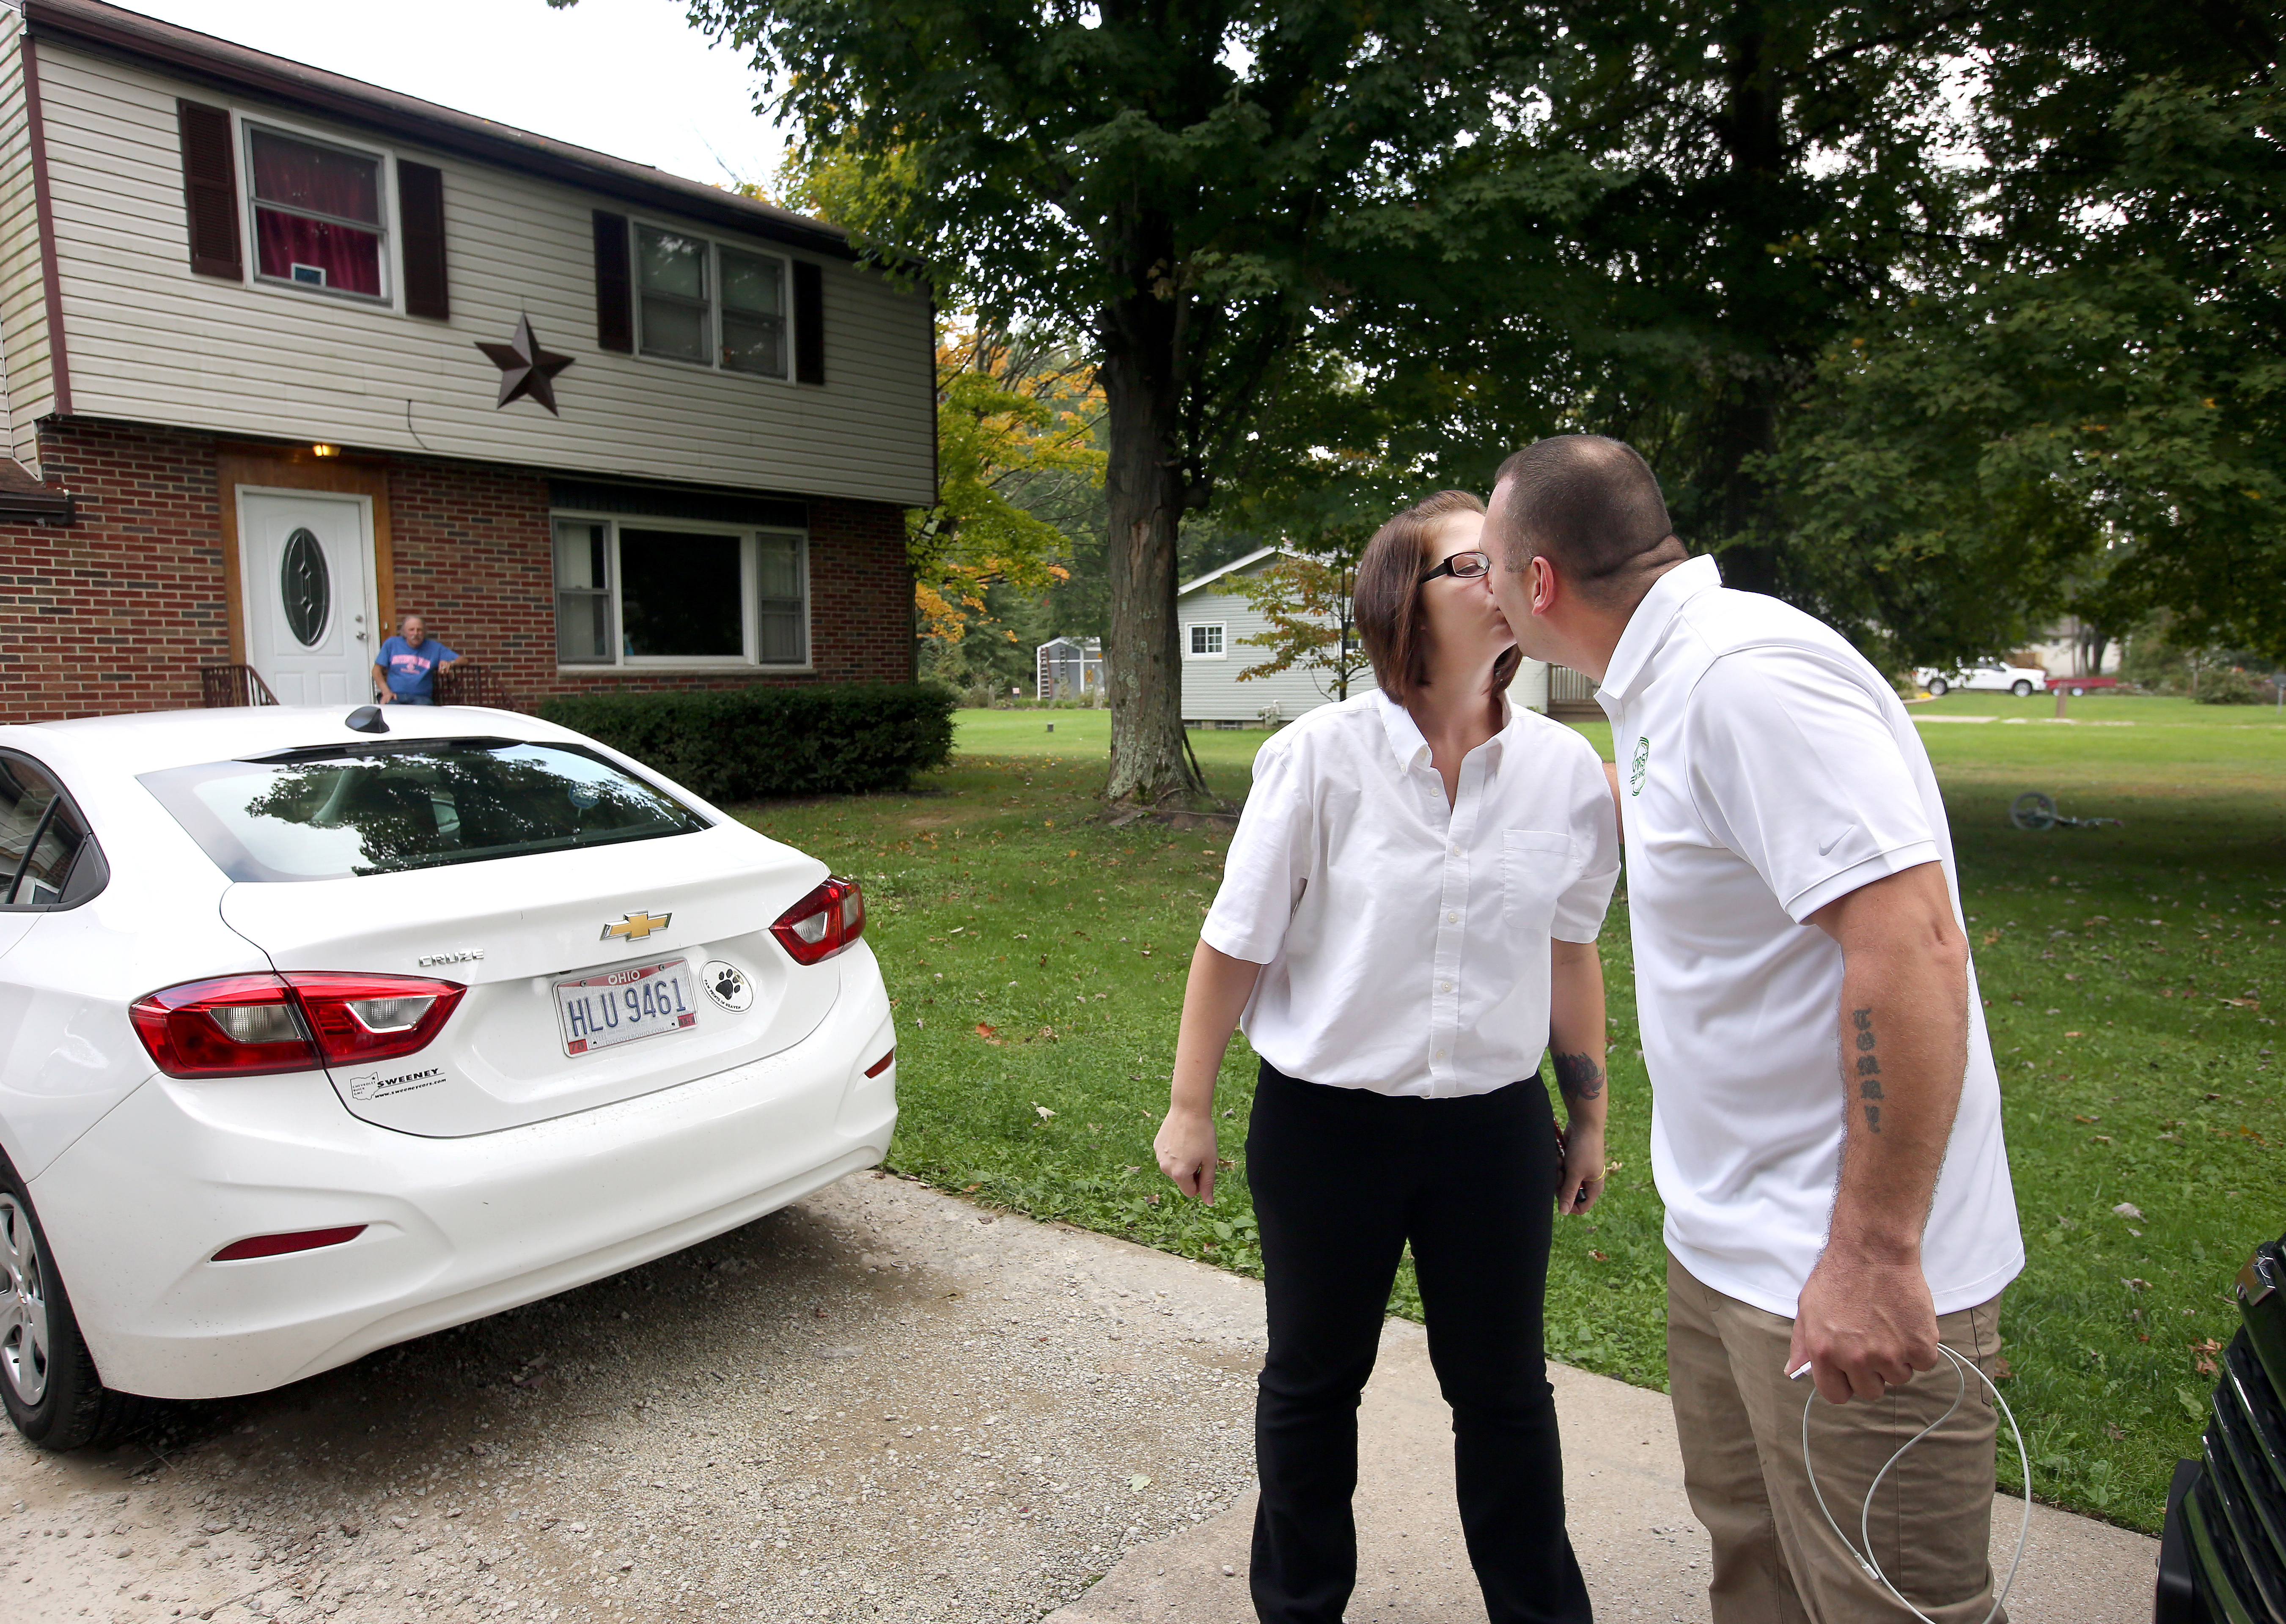 Tommy Wolikow and Rochelle Carlisle kiss outside their home in Warren